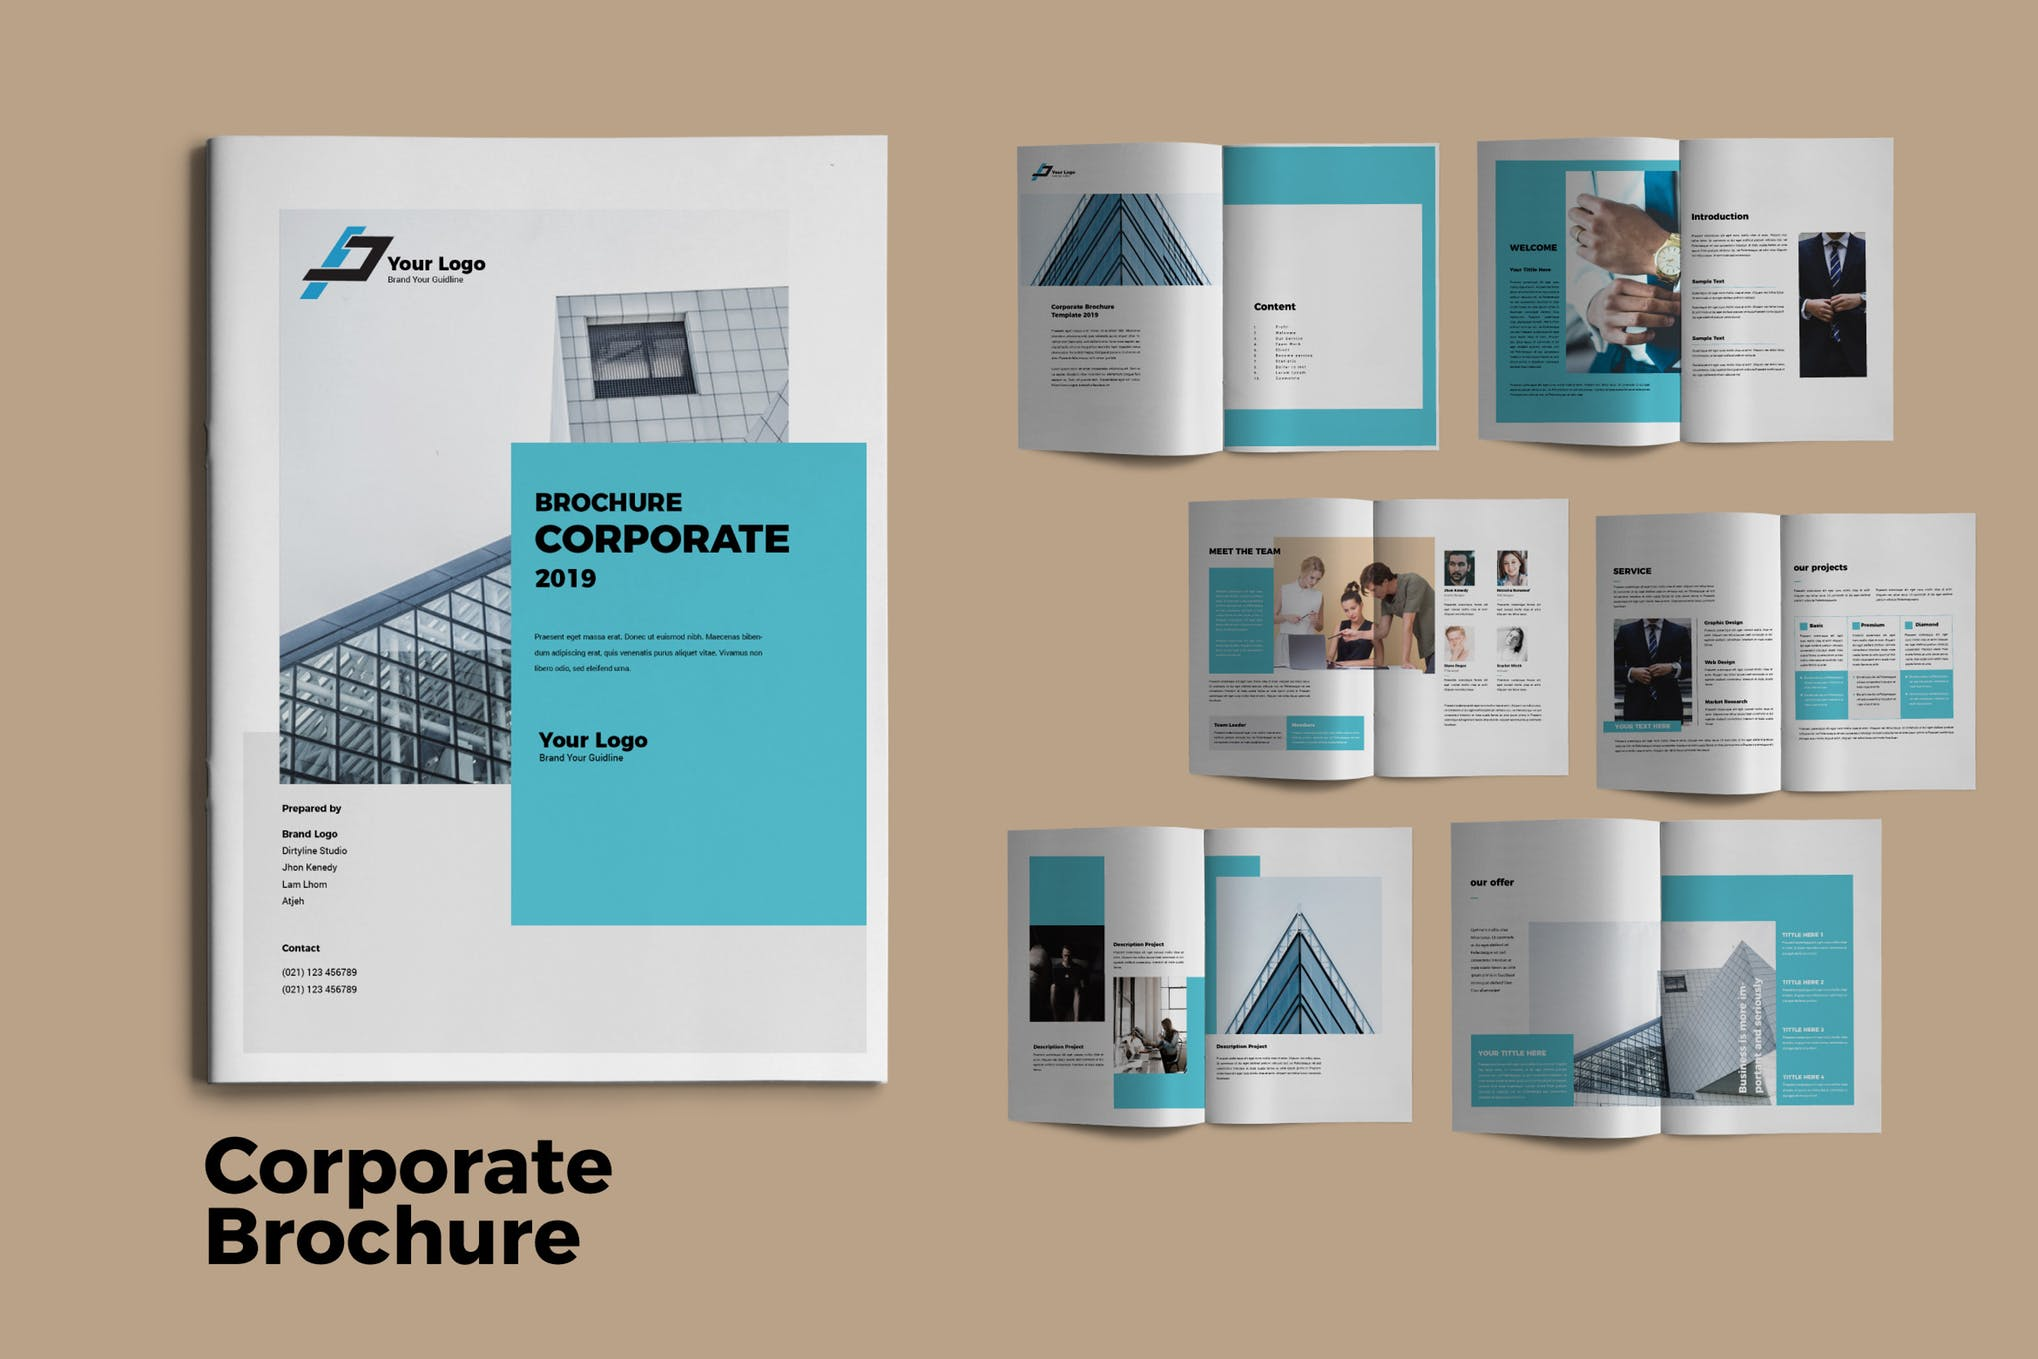 The Corporate Brochure InDesign template